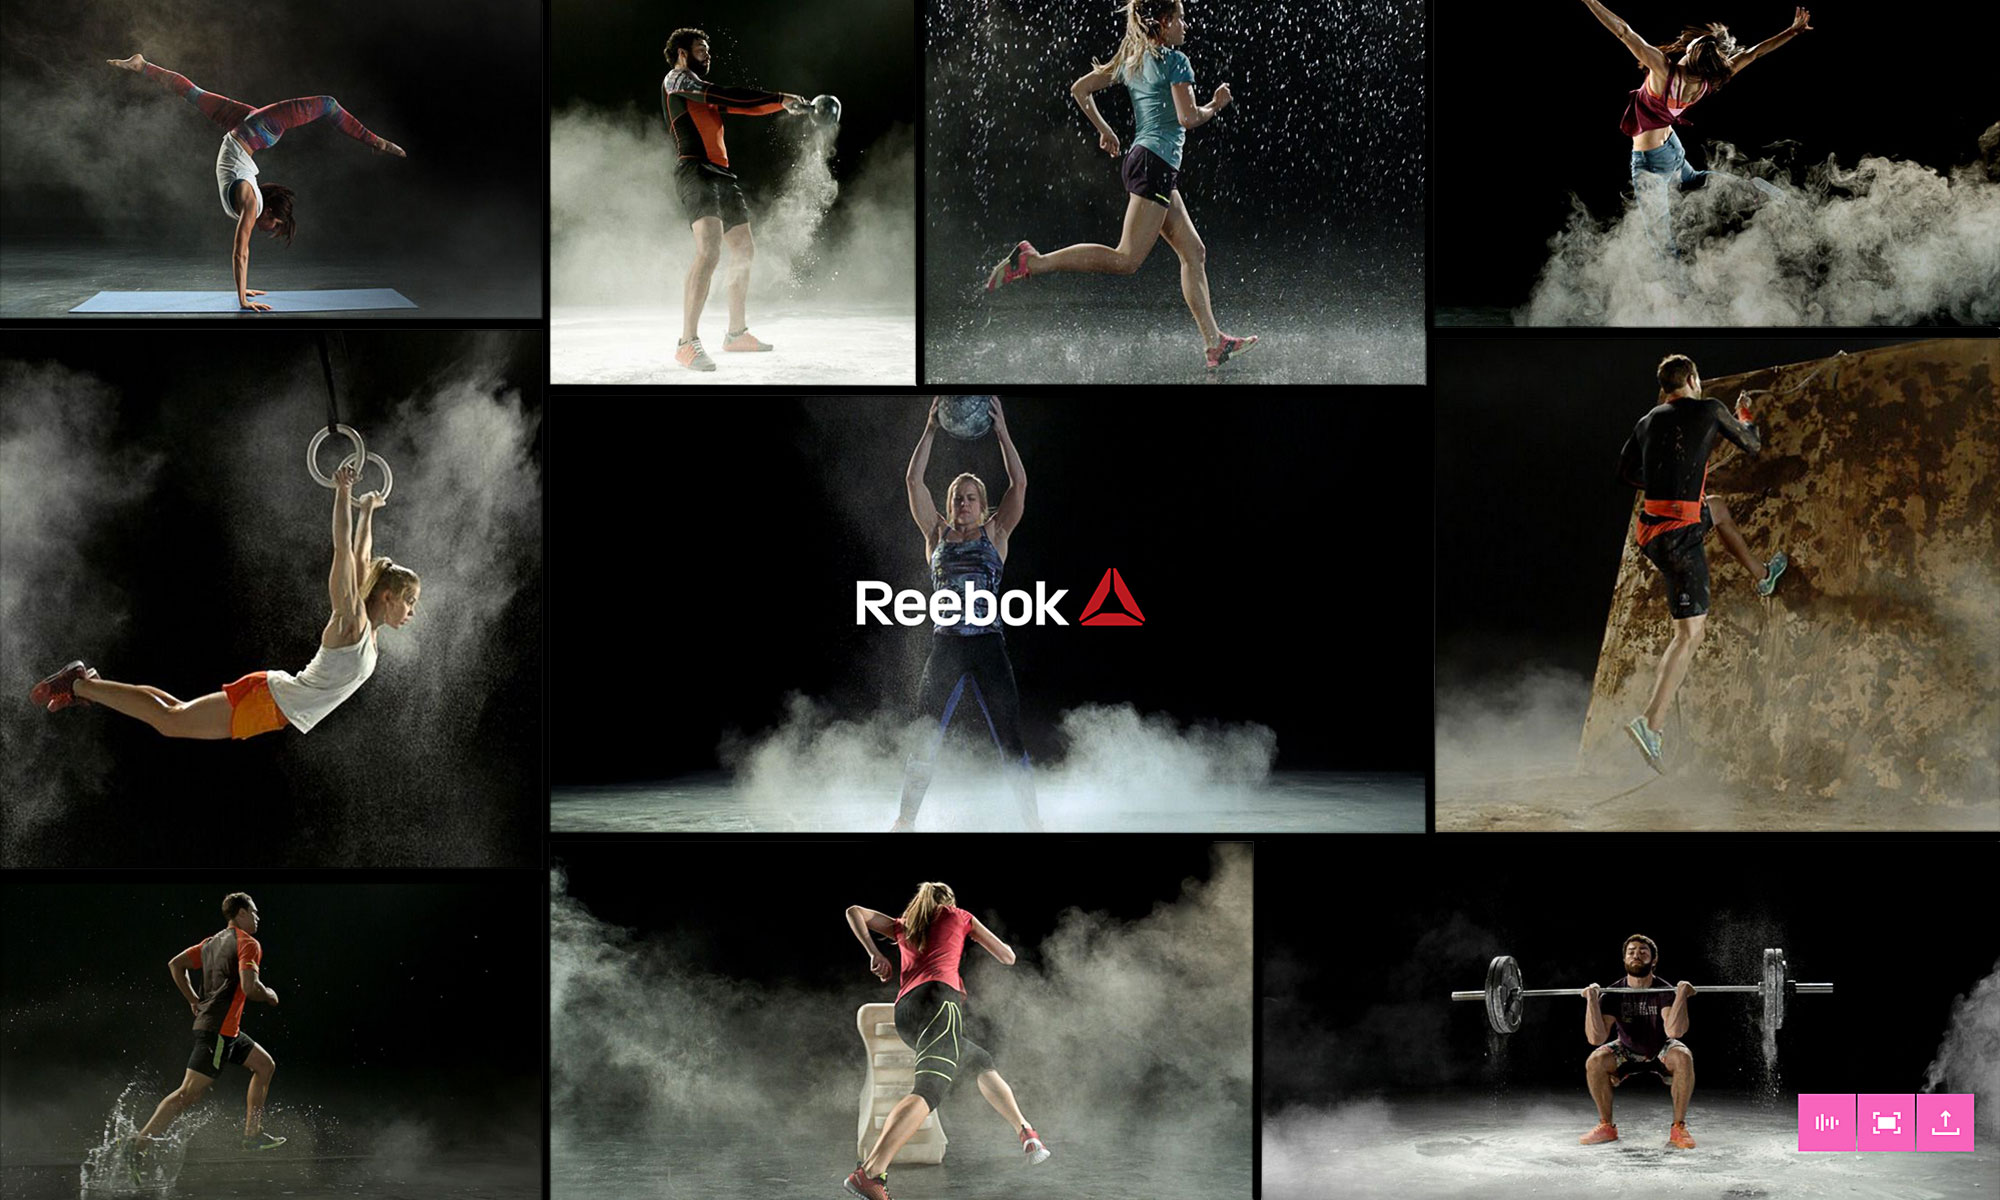 reebok_multi_screen.jpg